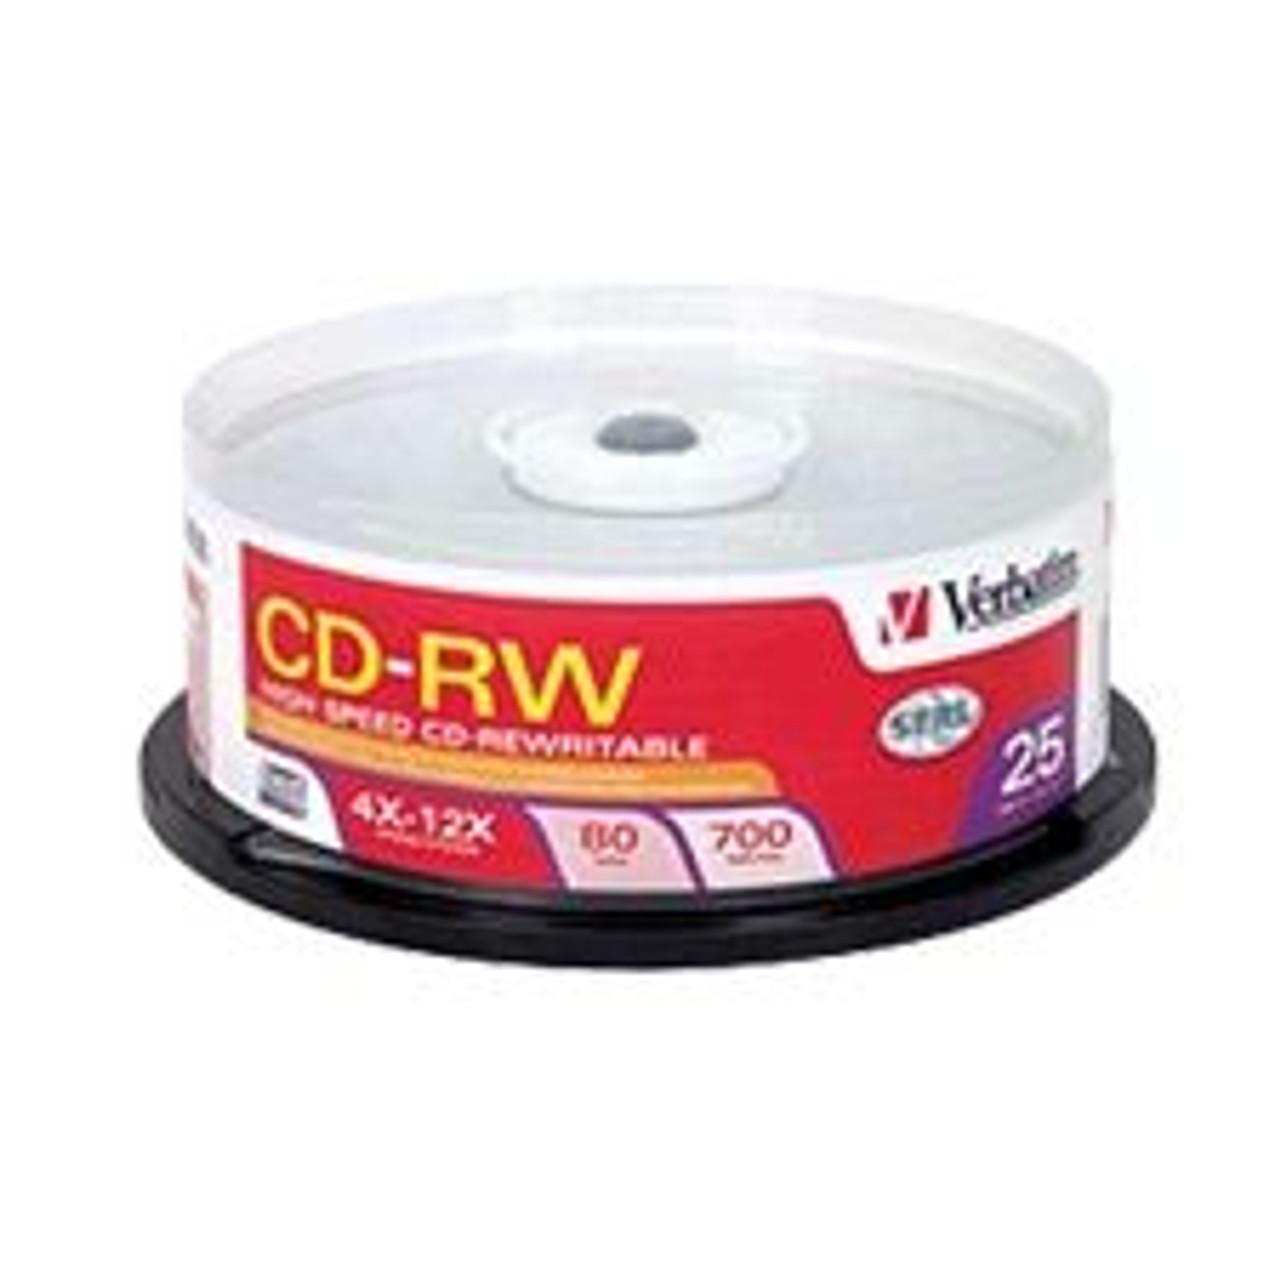 Image for Verbatim 12x High Speed CD-RW 700MB Disc 25 Pack Spindl CX Computer Superstore